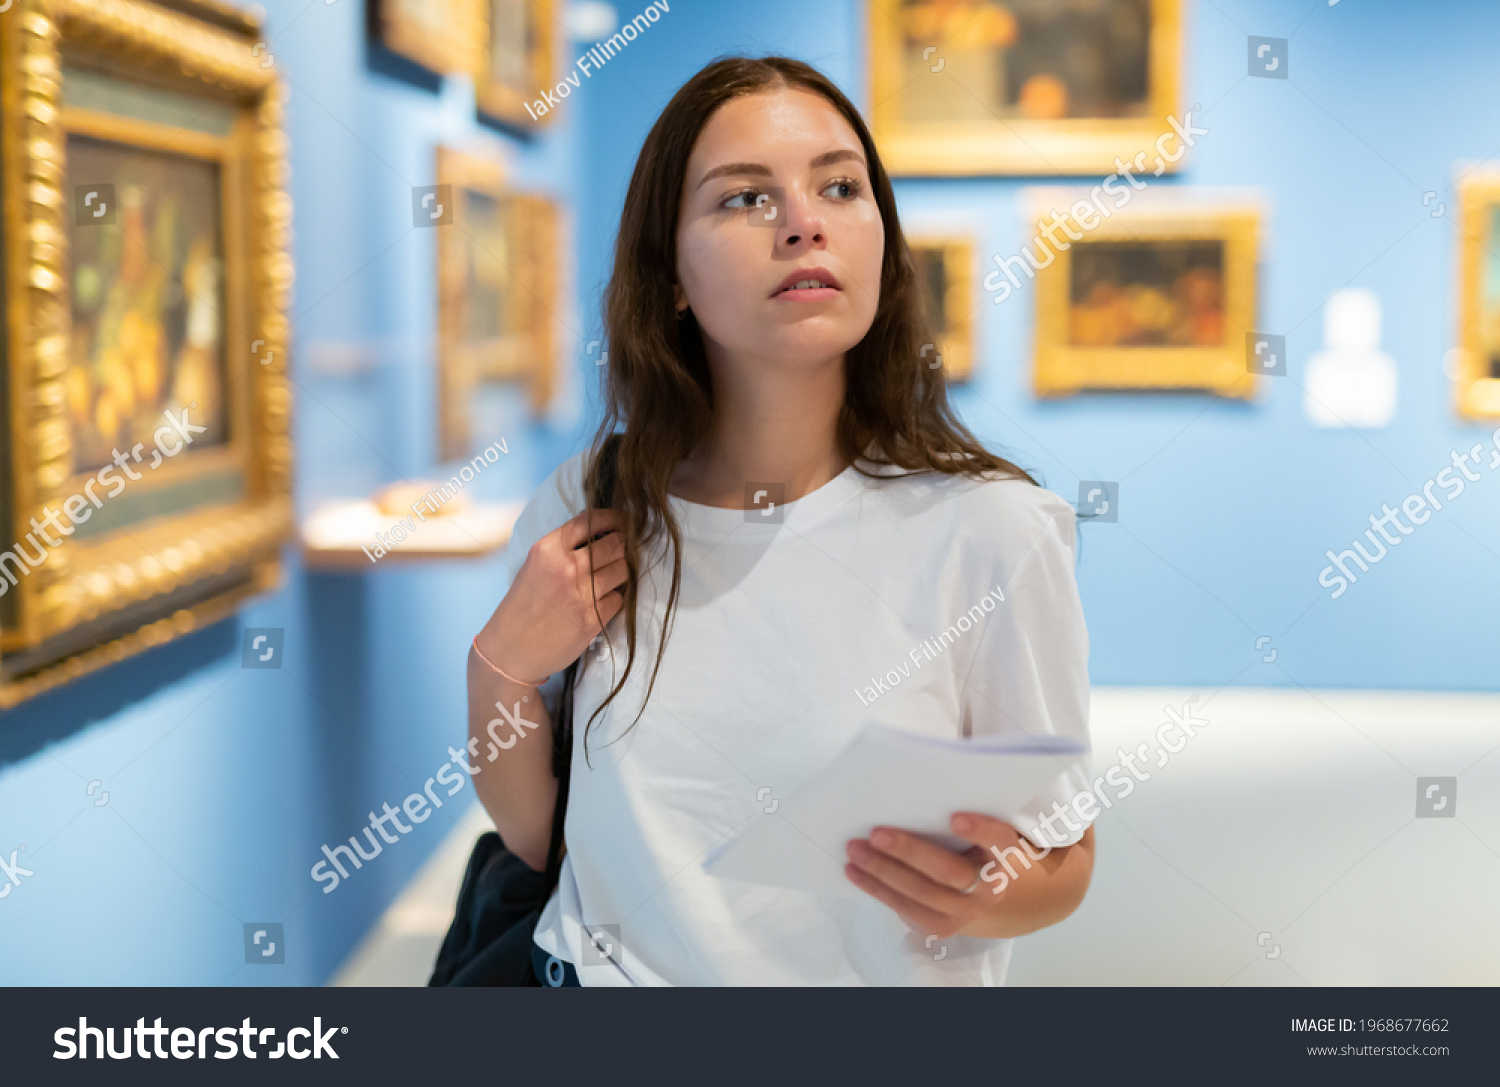 Focused young girl visitor holds a booklet with an exhibition program while admiring the paintings in the museum #1968677662